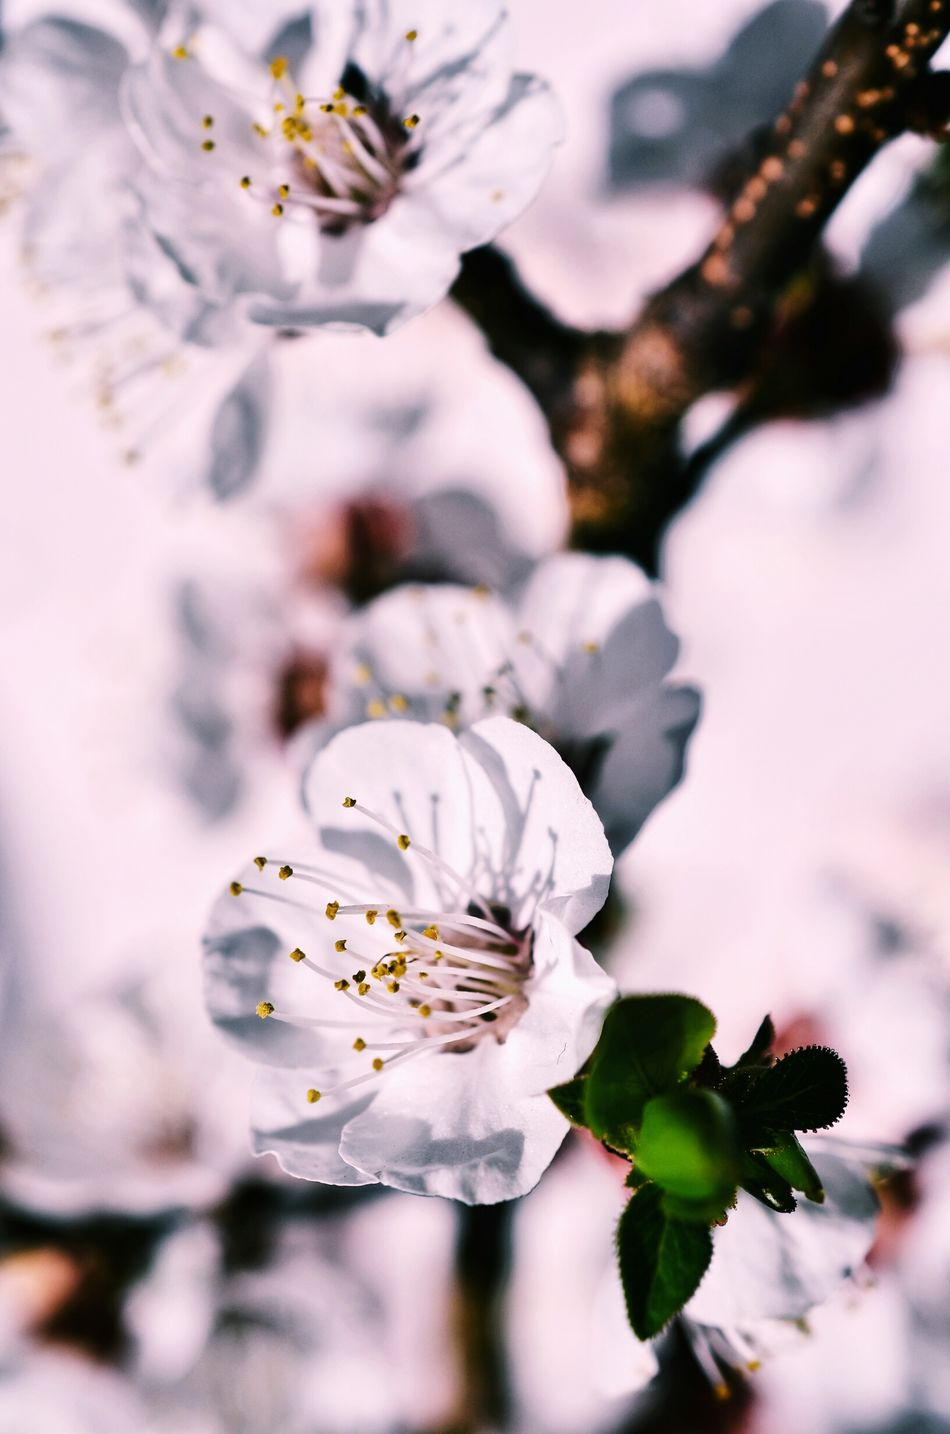 Patterns In Nature Springtime Spring Time Spring Light And Shadow ApricotBlossom Blooming Flower Blooming White Flower Flower Blossom Tree Blossom Apricot Flowers Apricot Tree Backgrounds Sunlight And Shadow White Background Closing Pastel Colored Plant Beauty In Nature Morning Light Close-up Flower Head Beauty